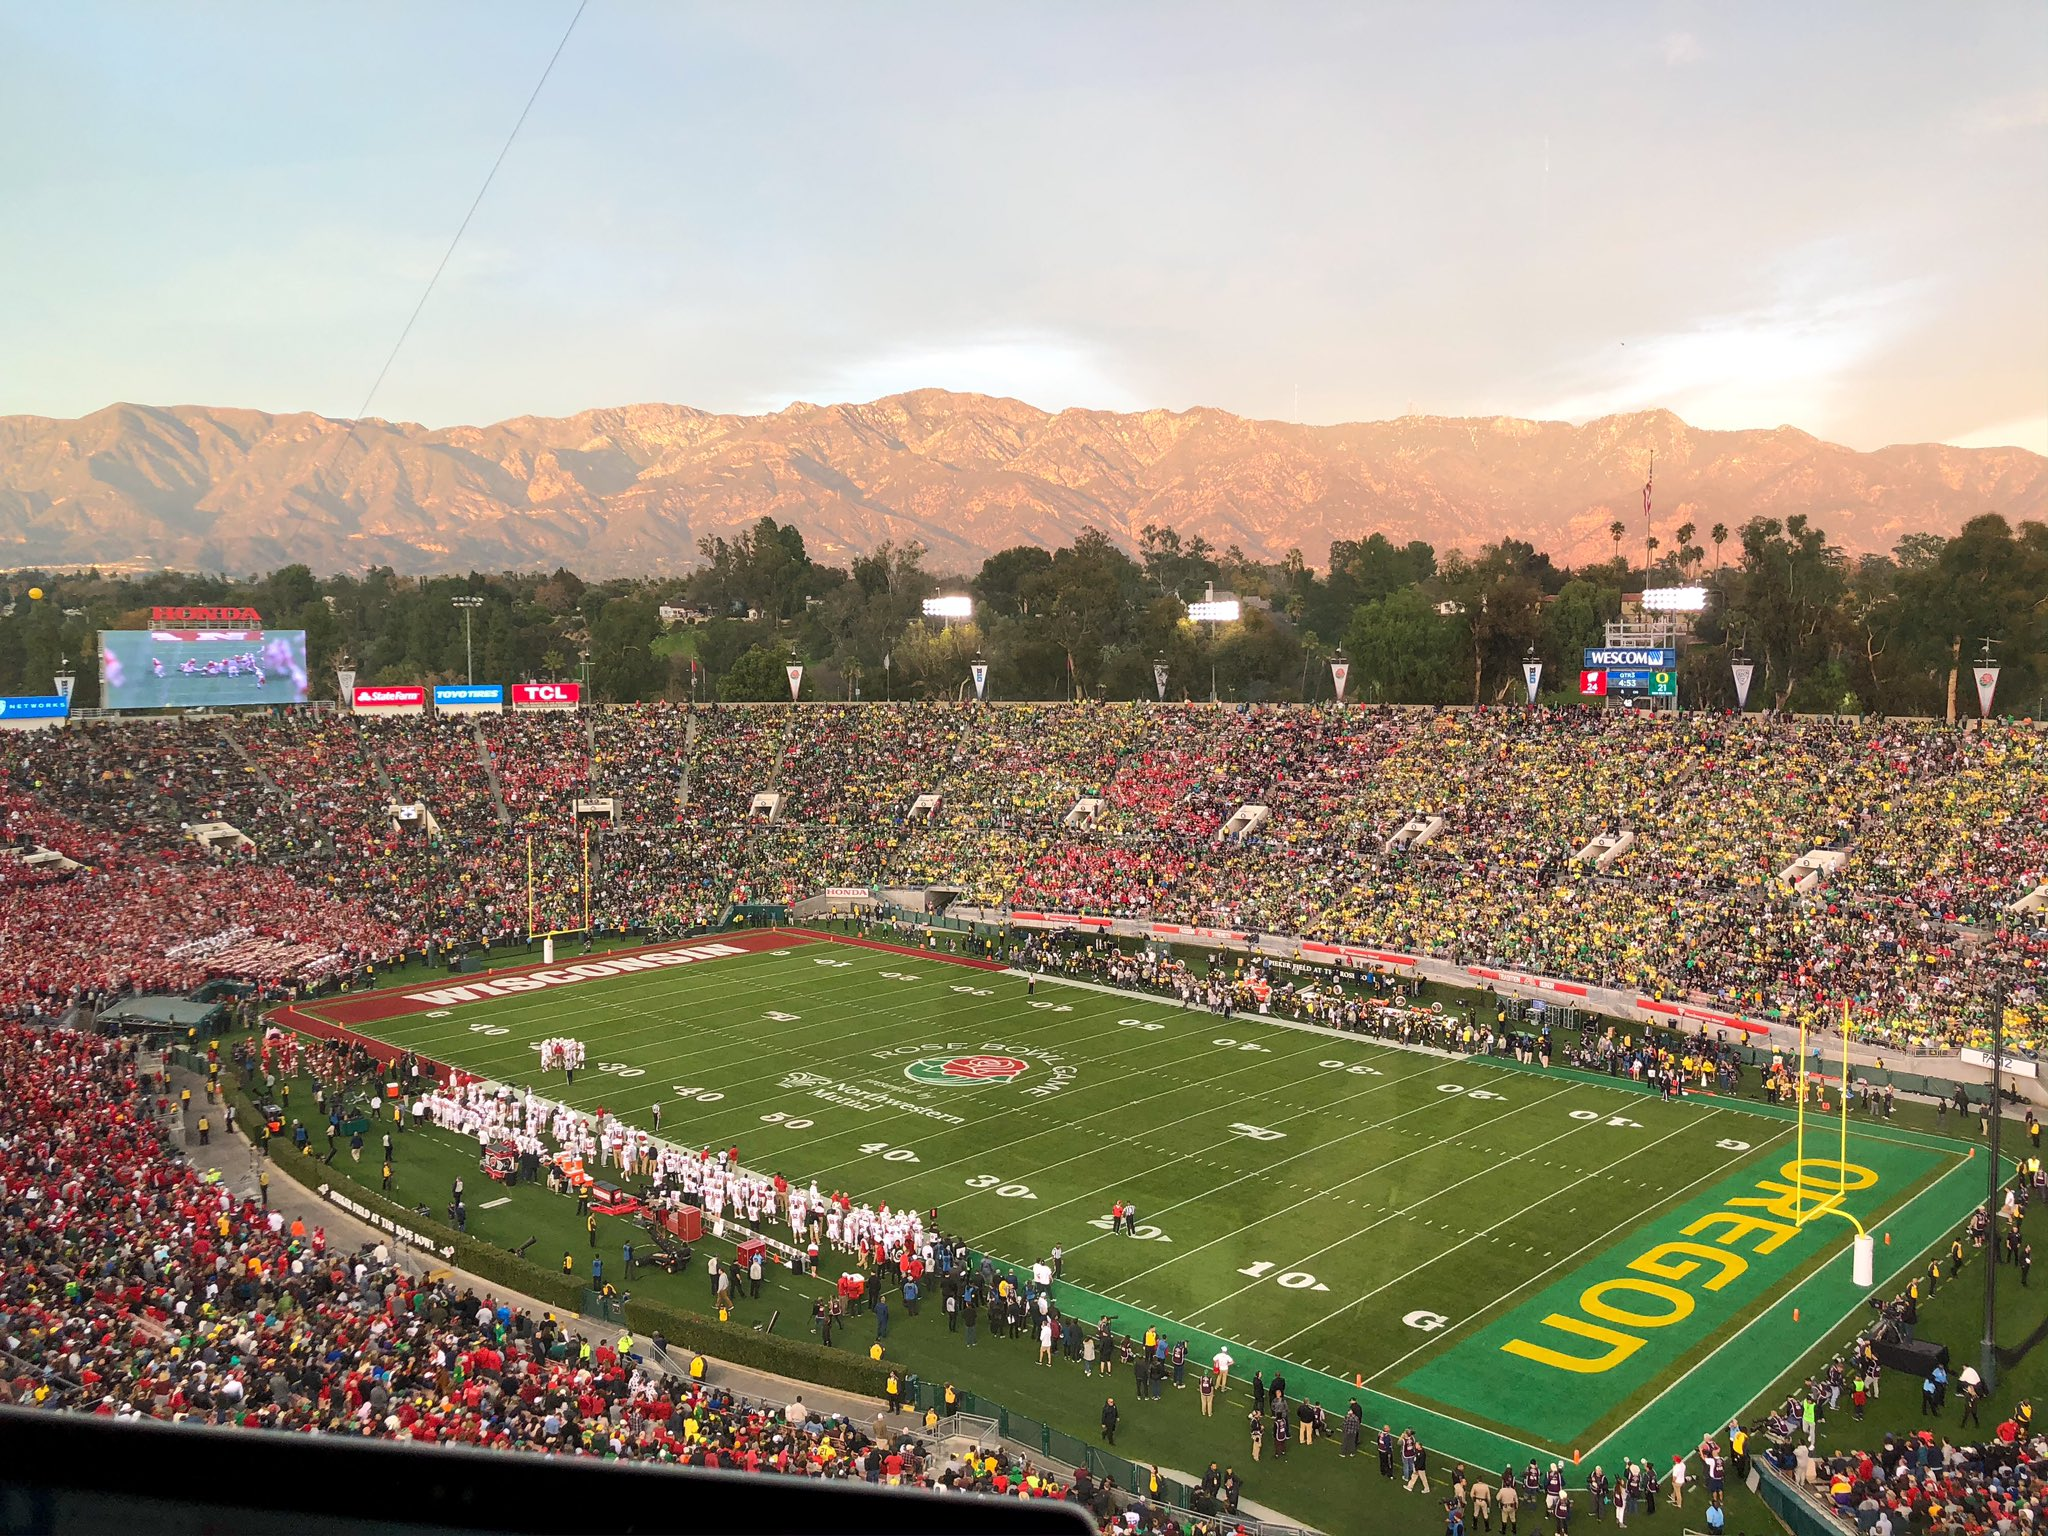 🌹 Rose Bowl Sunset 🌹 https://t.co/9WjHon9Bdi